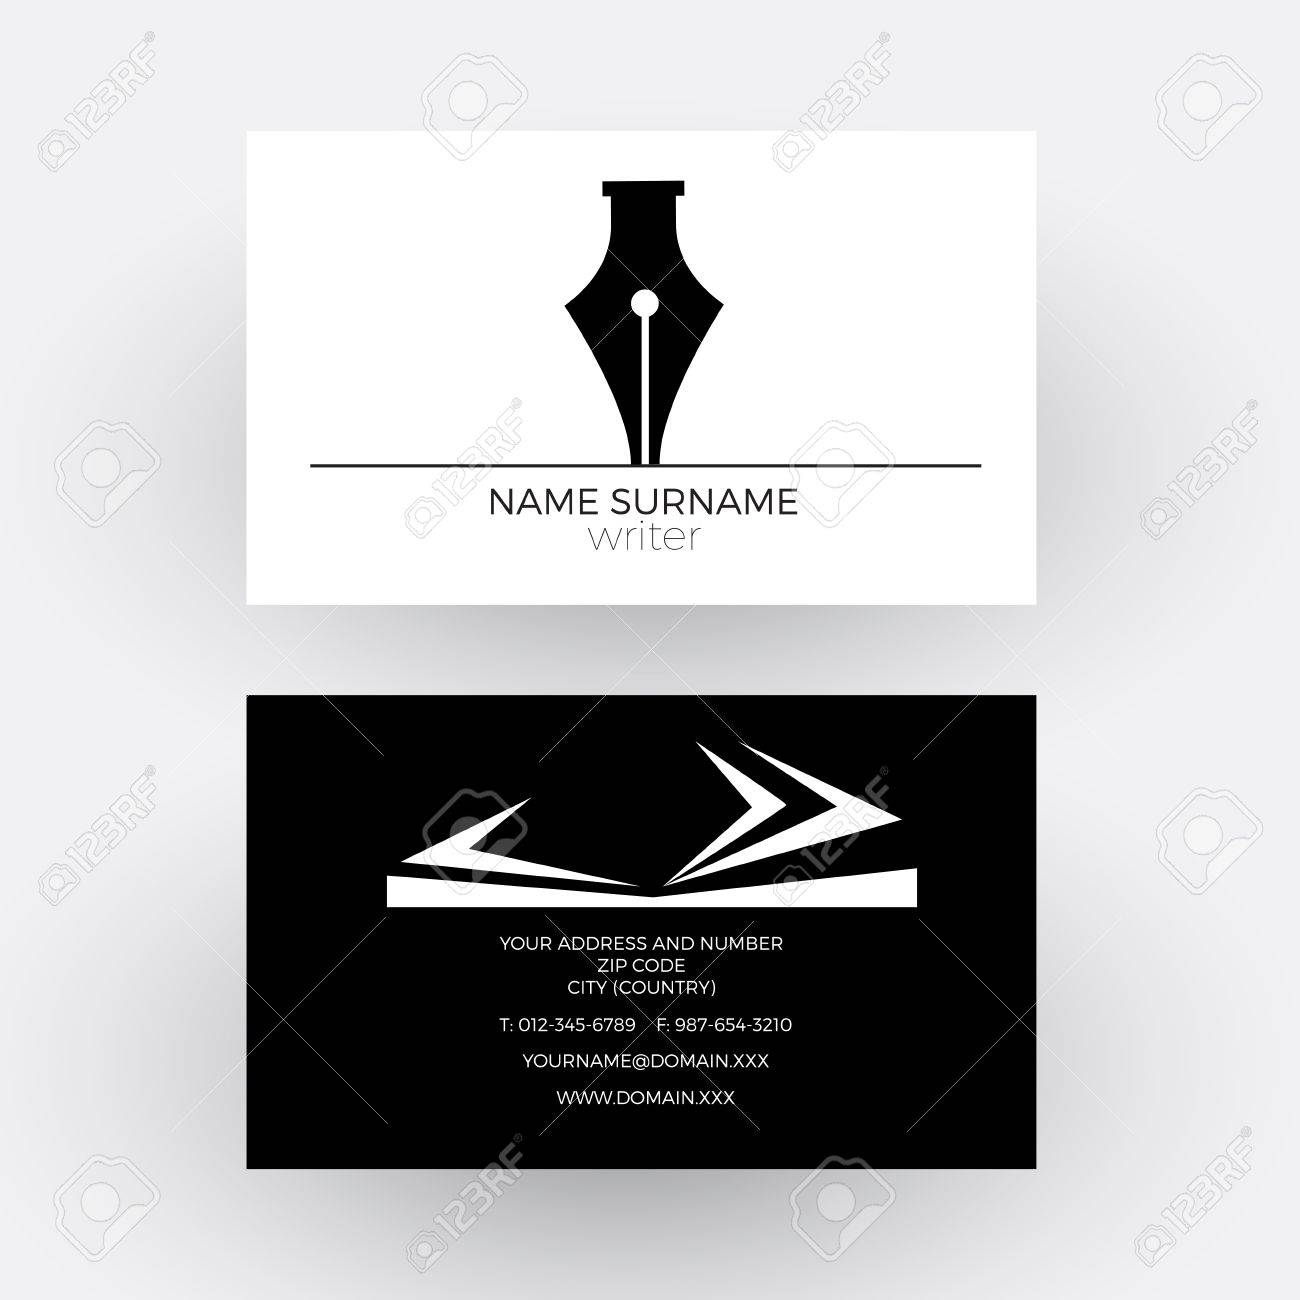 Writer business cards unlimitedgamers abstract fountain pen concept of writer business card royalty colourmoves